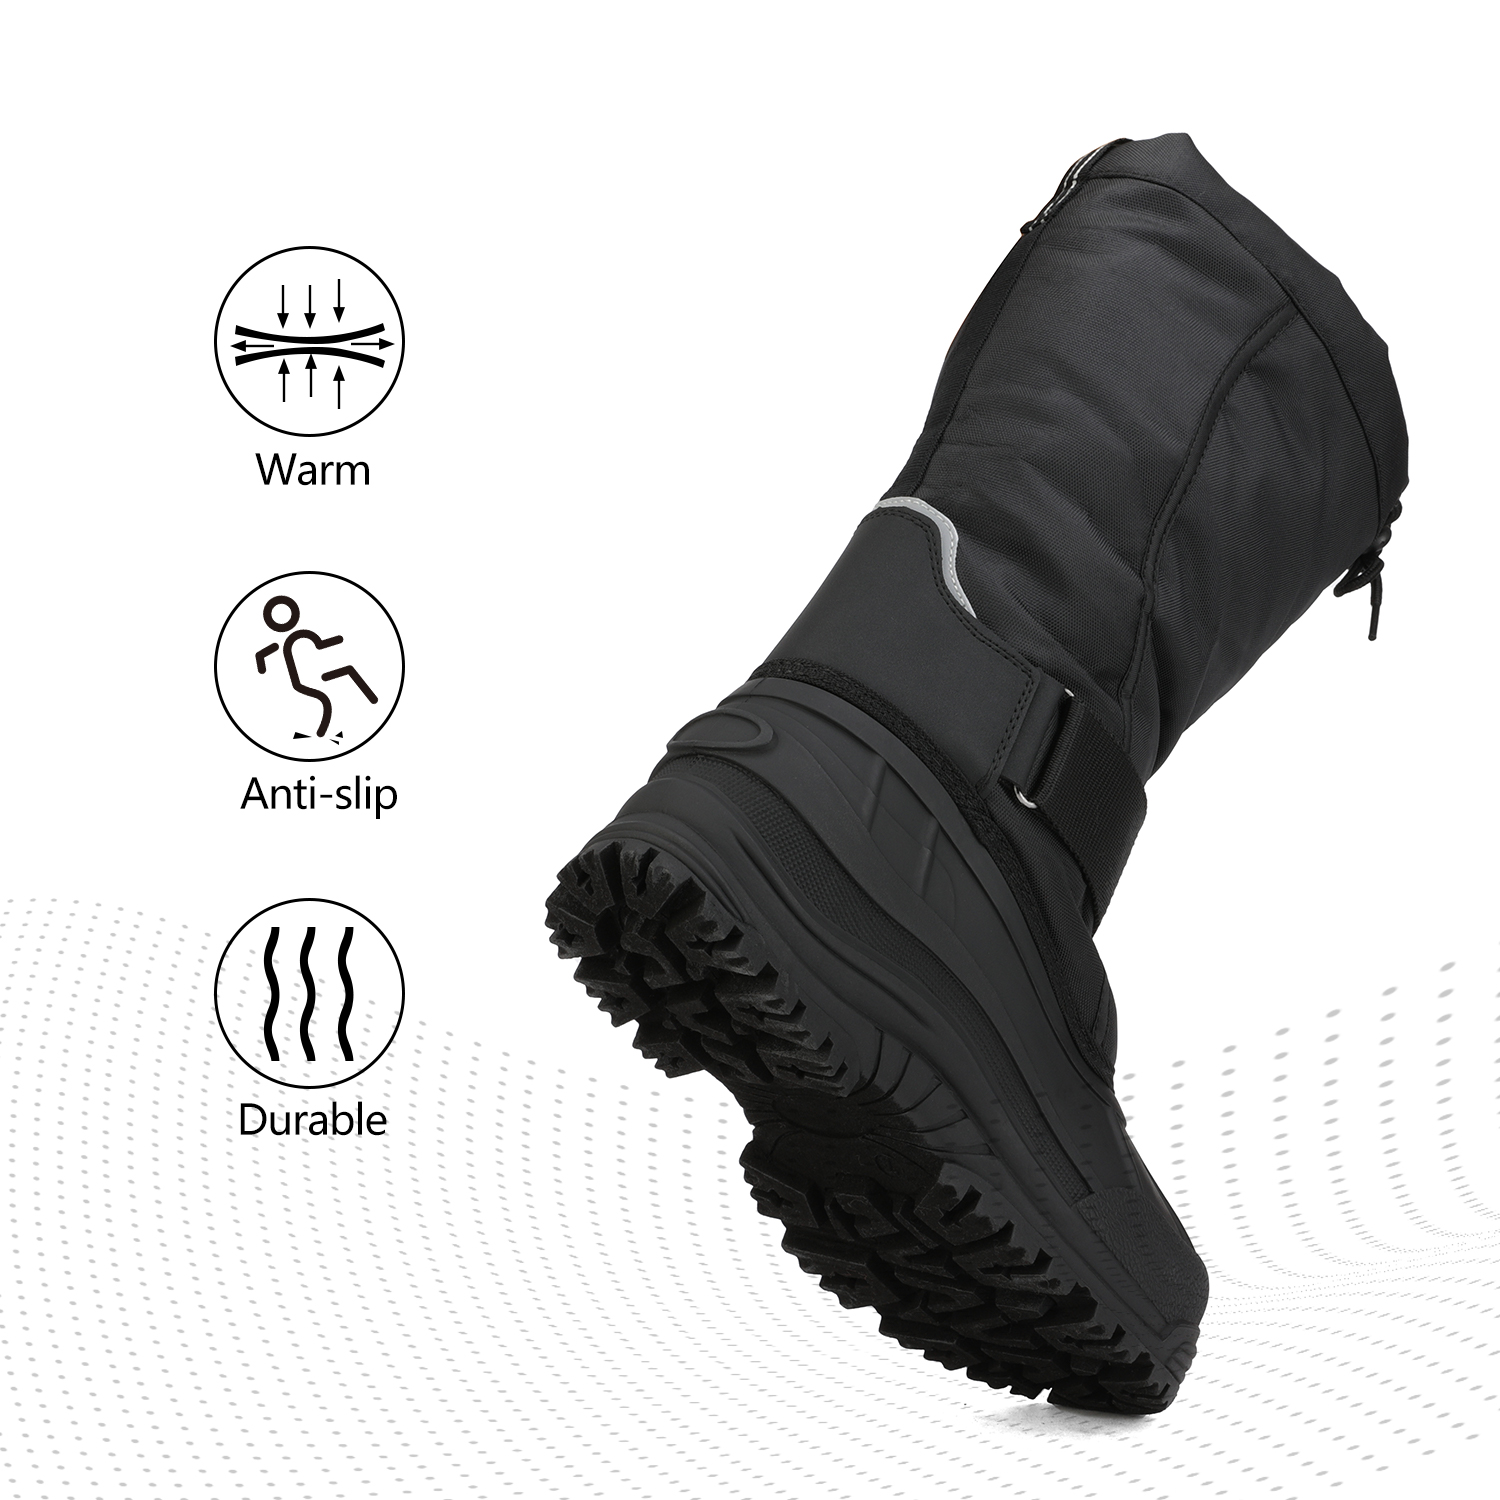 NORTIV-8-Men-039-s-Winter-Snow-Boots-Waterproof-Warm-Thermolite-Outdoor-Hiking-Boots thumbnail 9